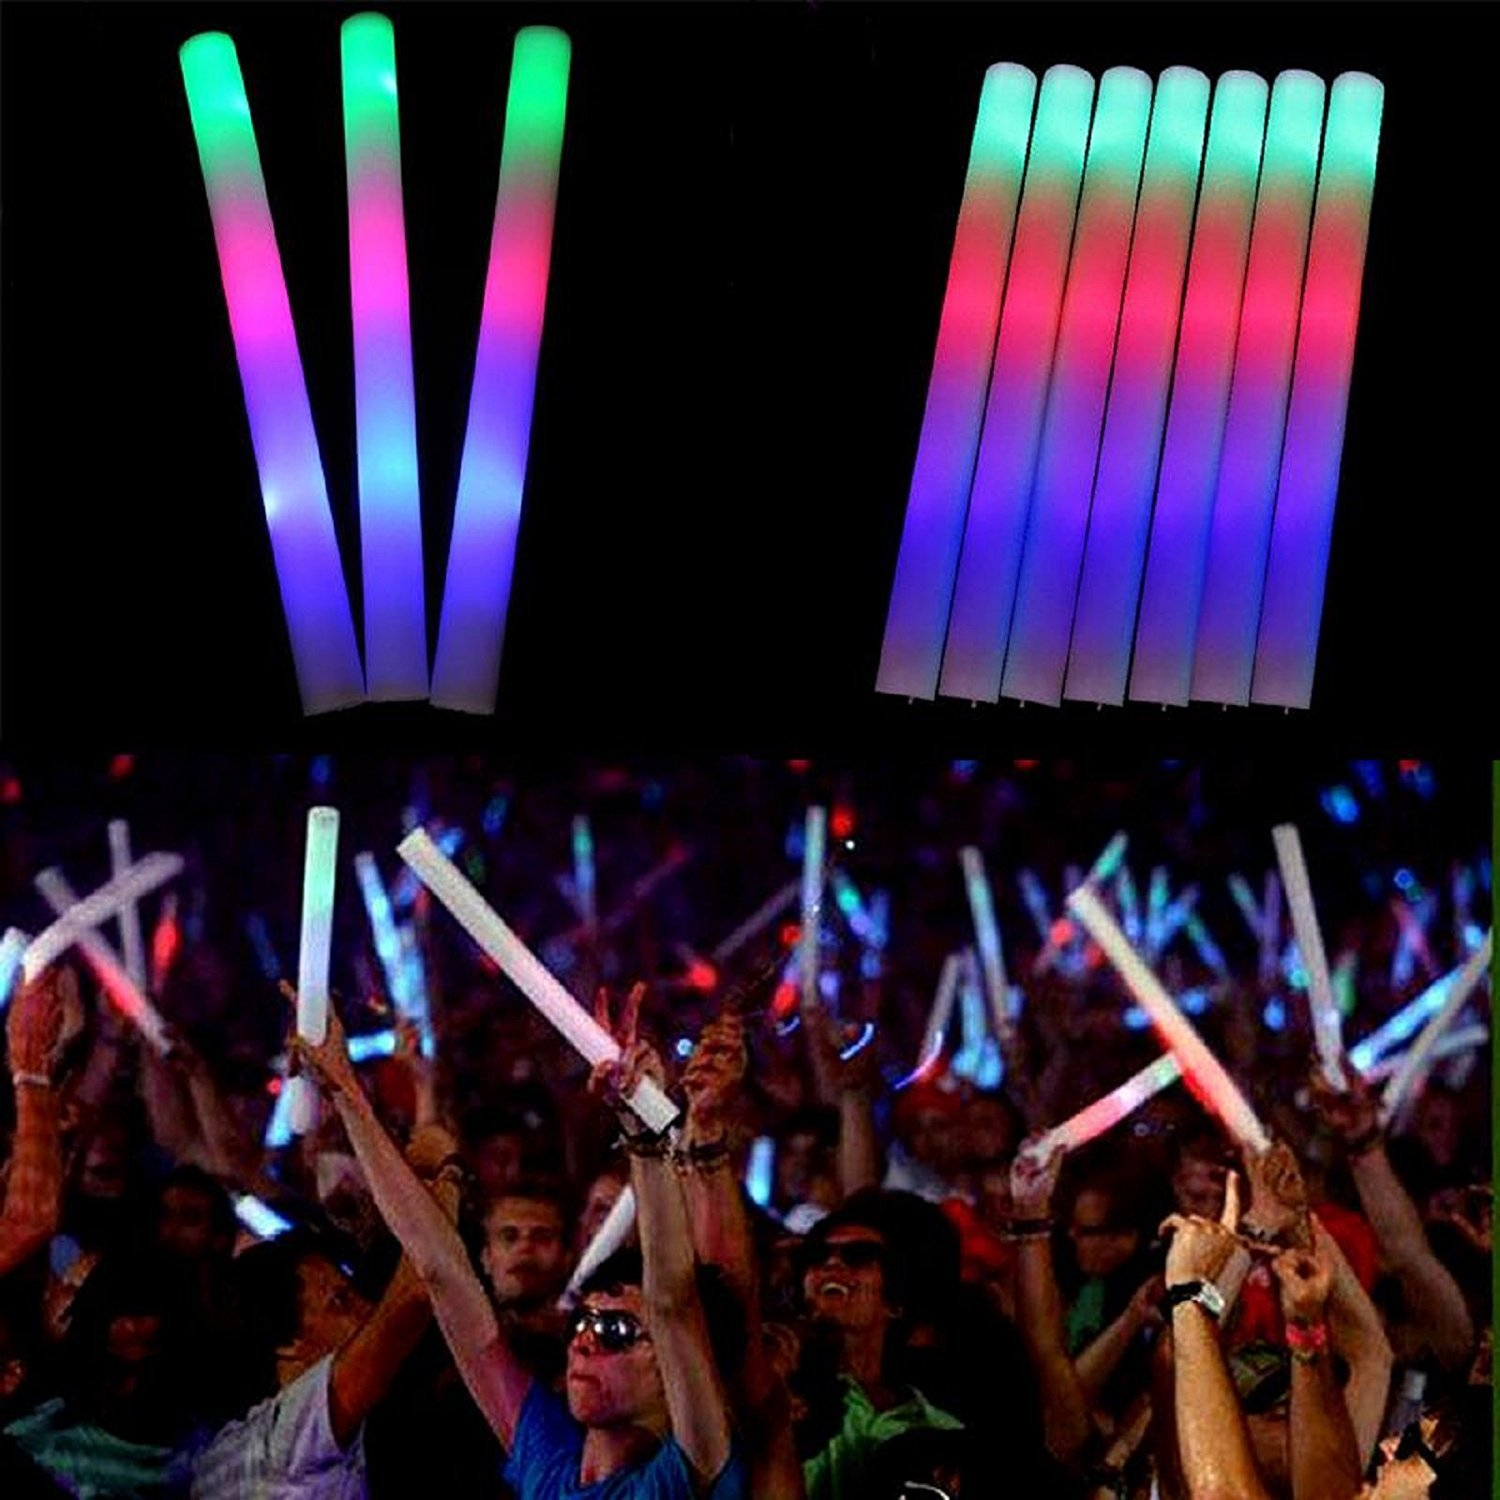 15PCS LED Colorful Flashing Foam Glow Stick Sponge Pretty Light Stick for Party Concert Halloween Wedding Christmas